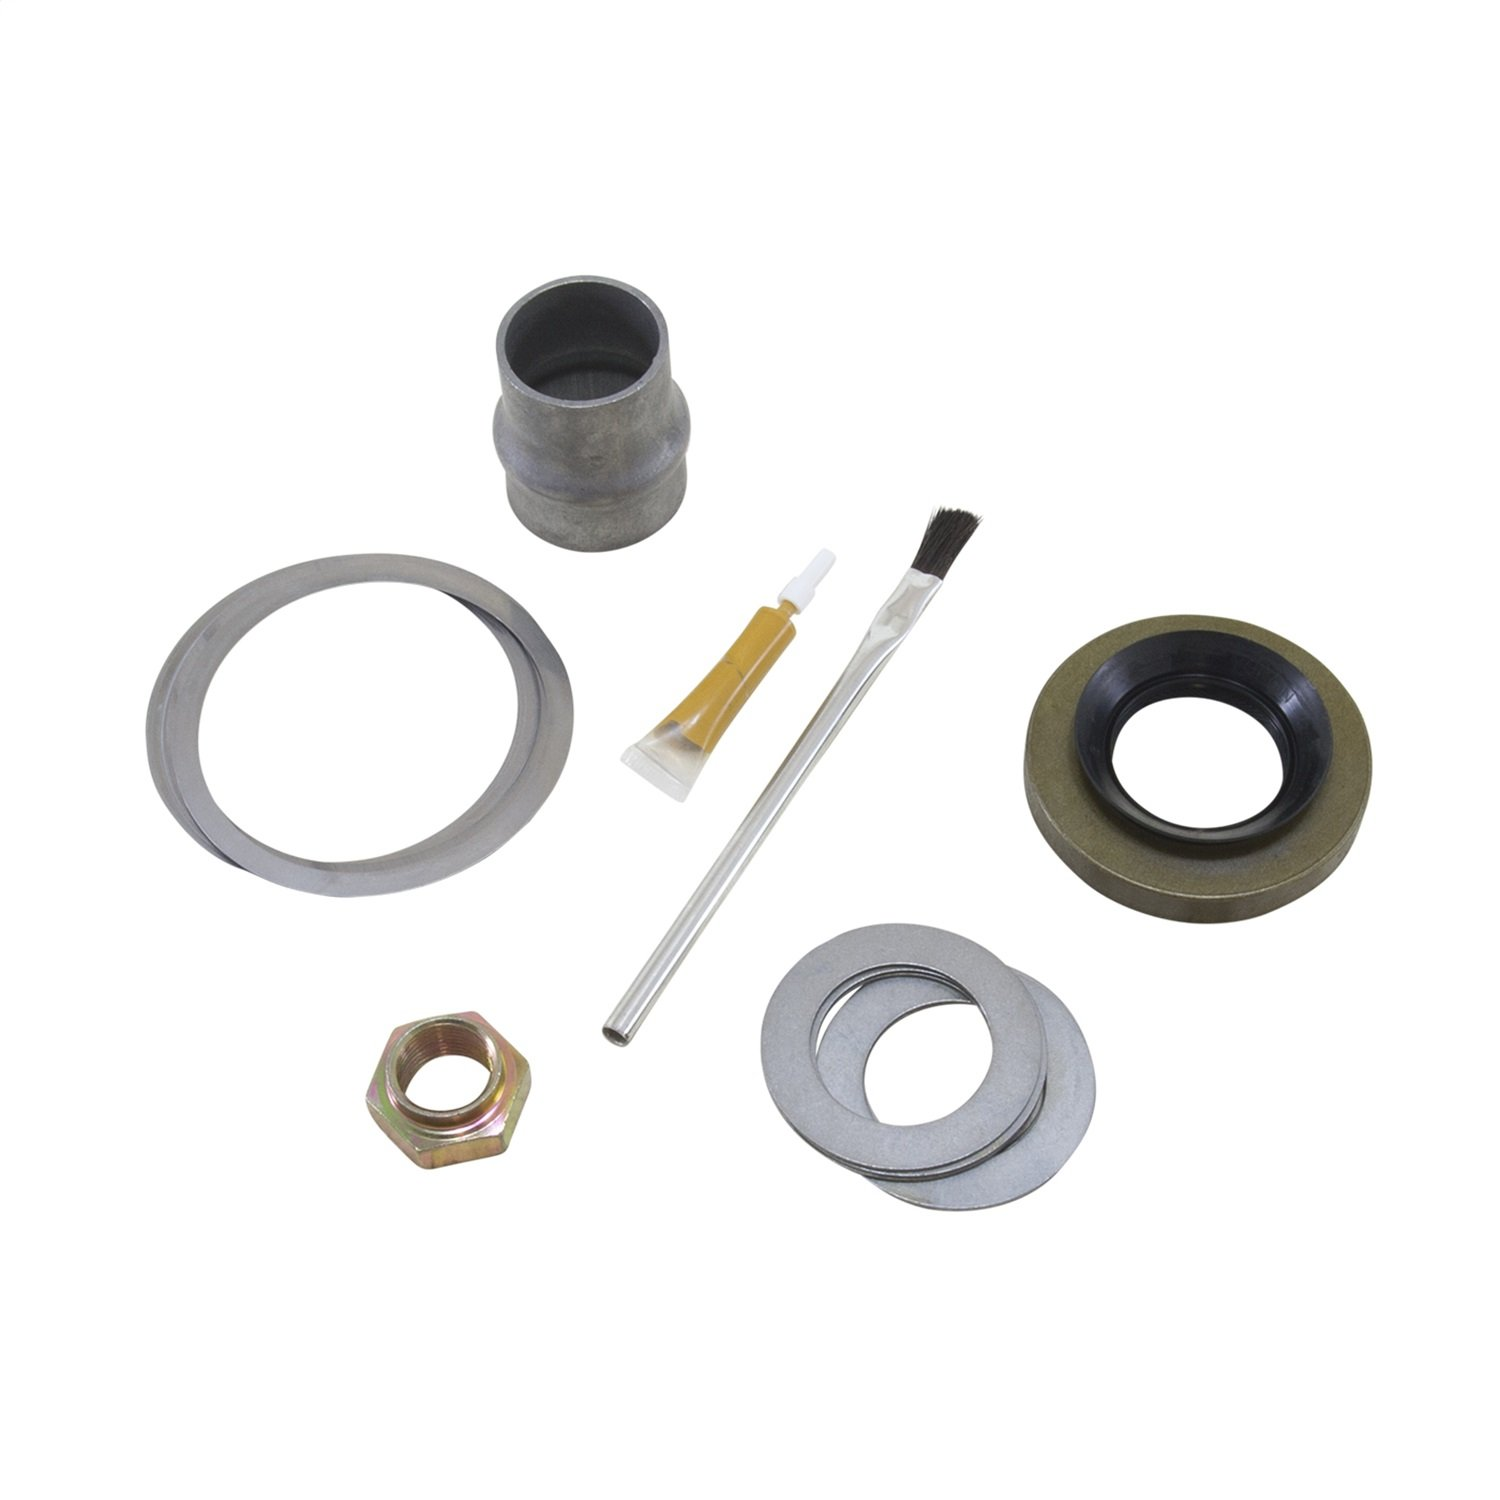 Yukon (MK T7.5-V6) Minor Installation Kit for Toyota V6 Engine 7.5' IFS Differential Yukon Gear